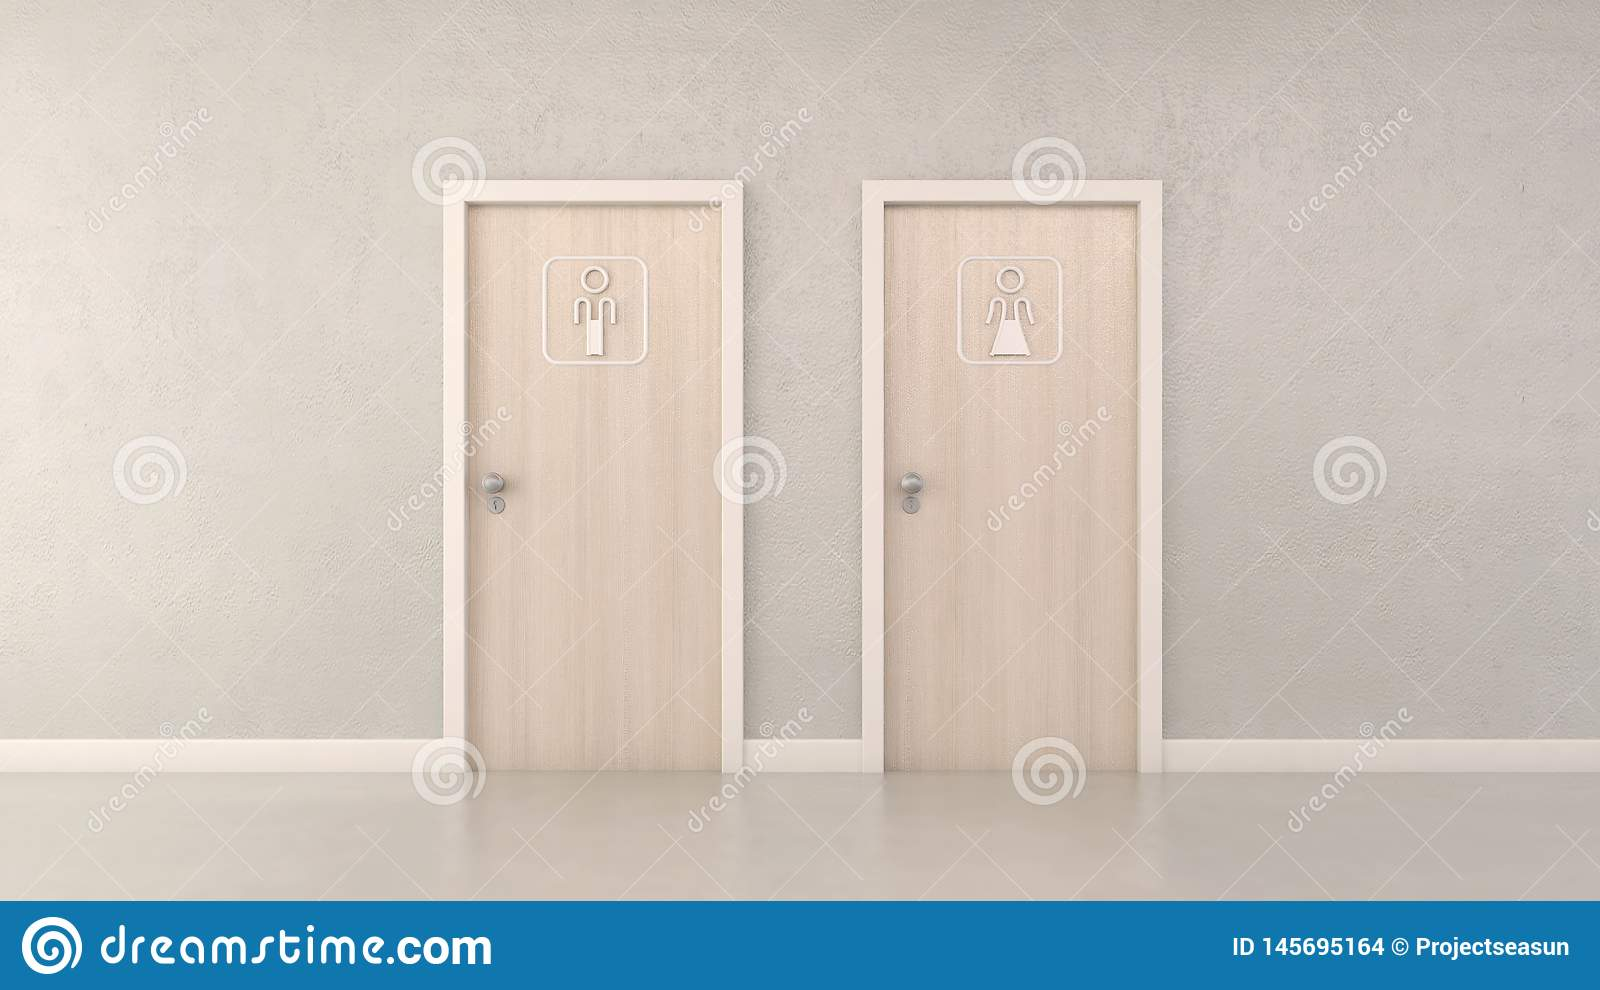 Modern toilet doors and pictogram